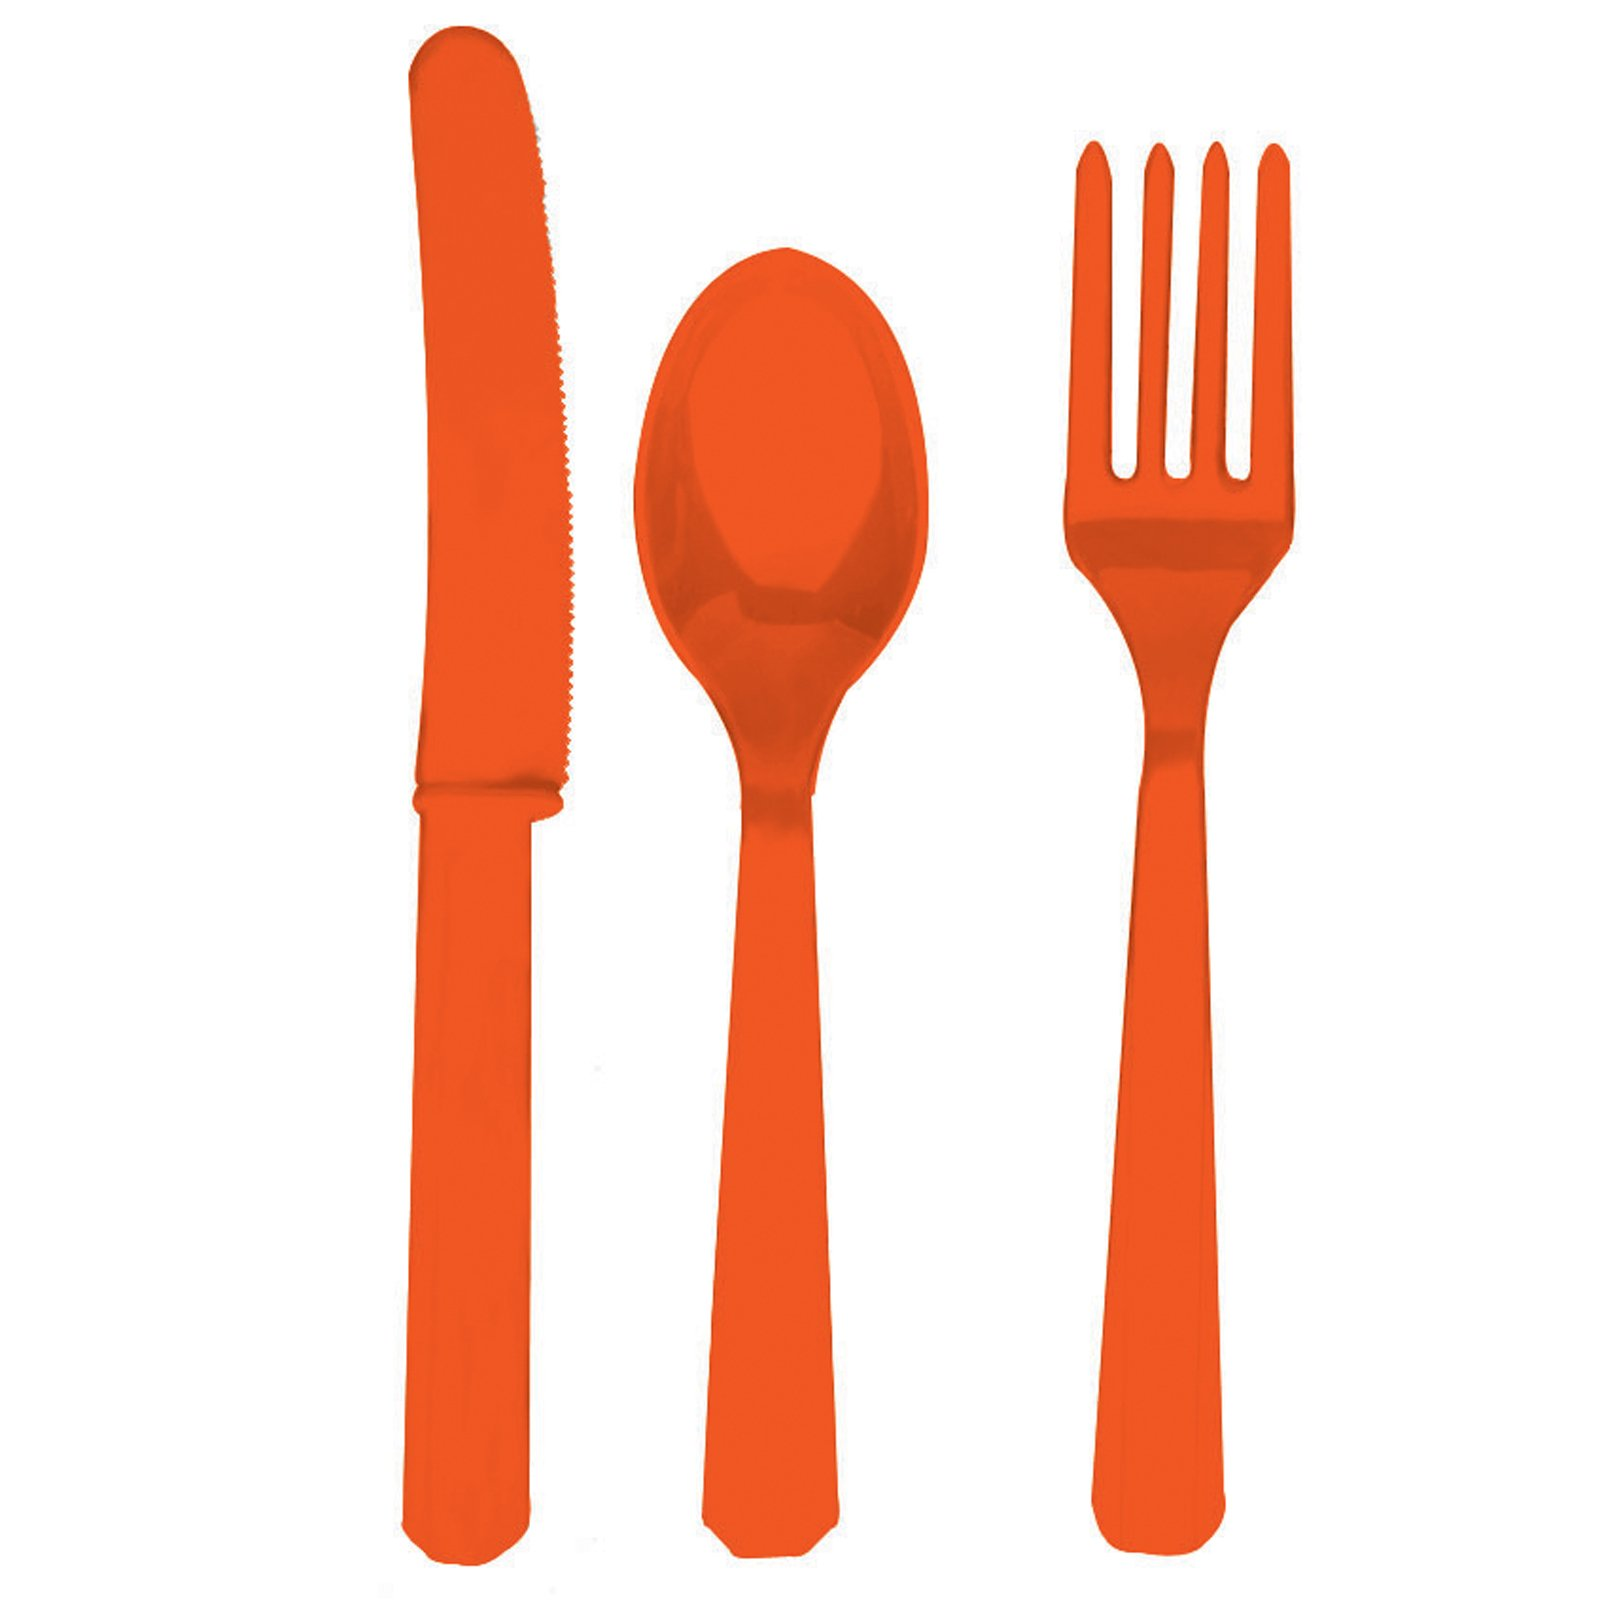 Orange Forks, Knives & Spoons (8 each)